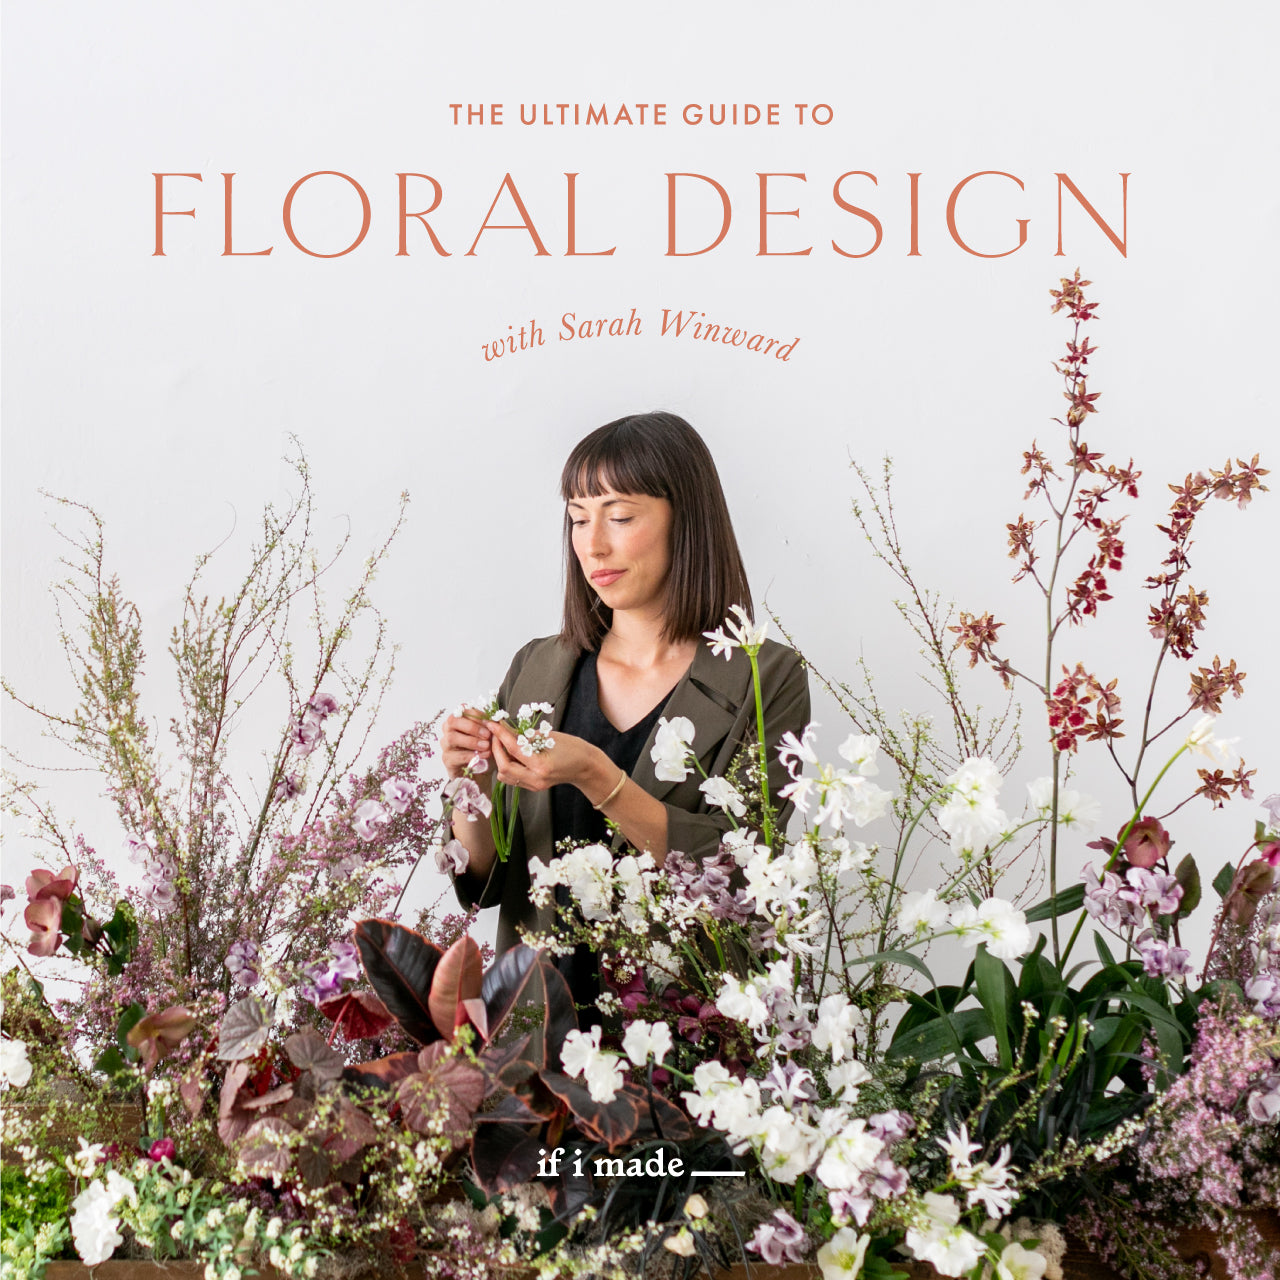 Sale Payment Plan: The Ultimate Guide to Floral Design with Sarah Winward - 13 Payments of $149